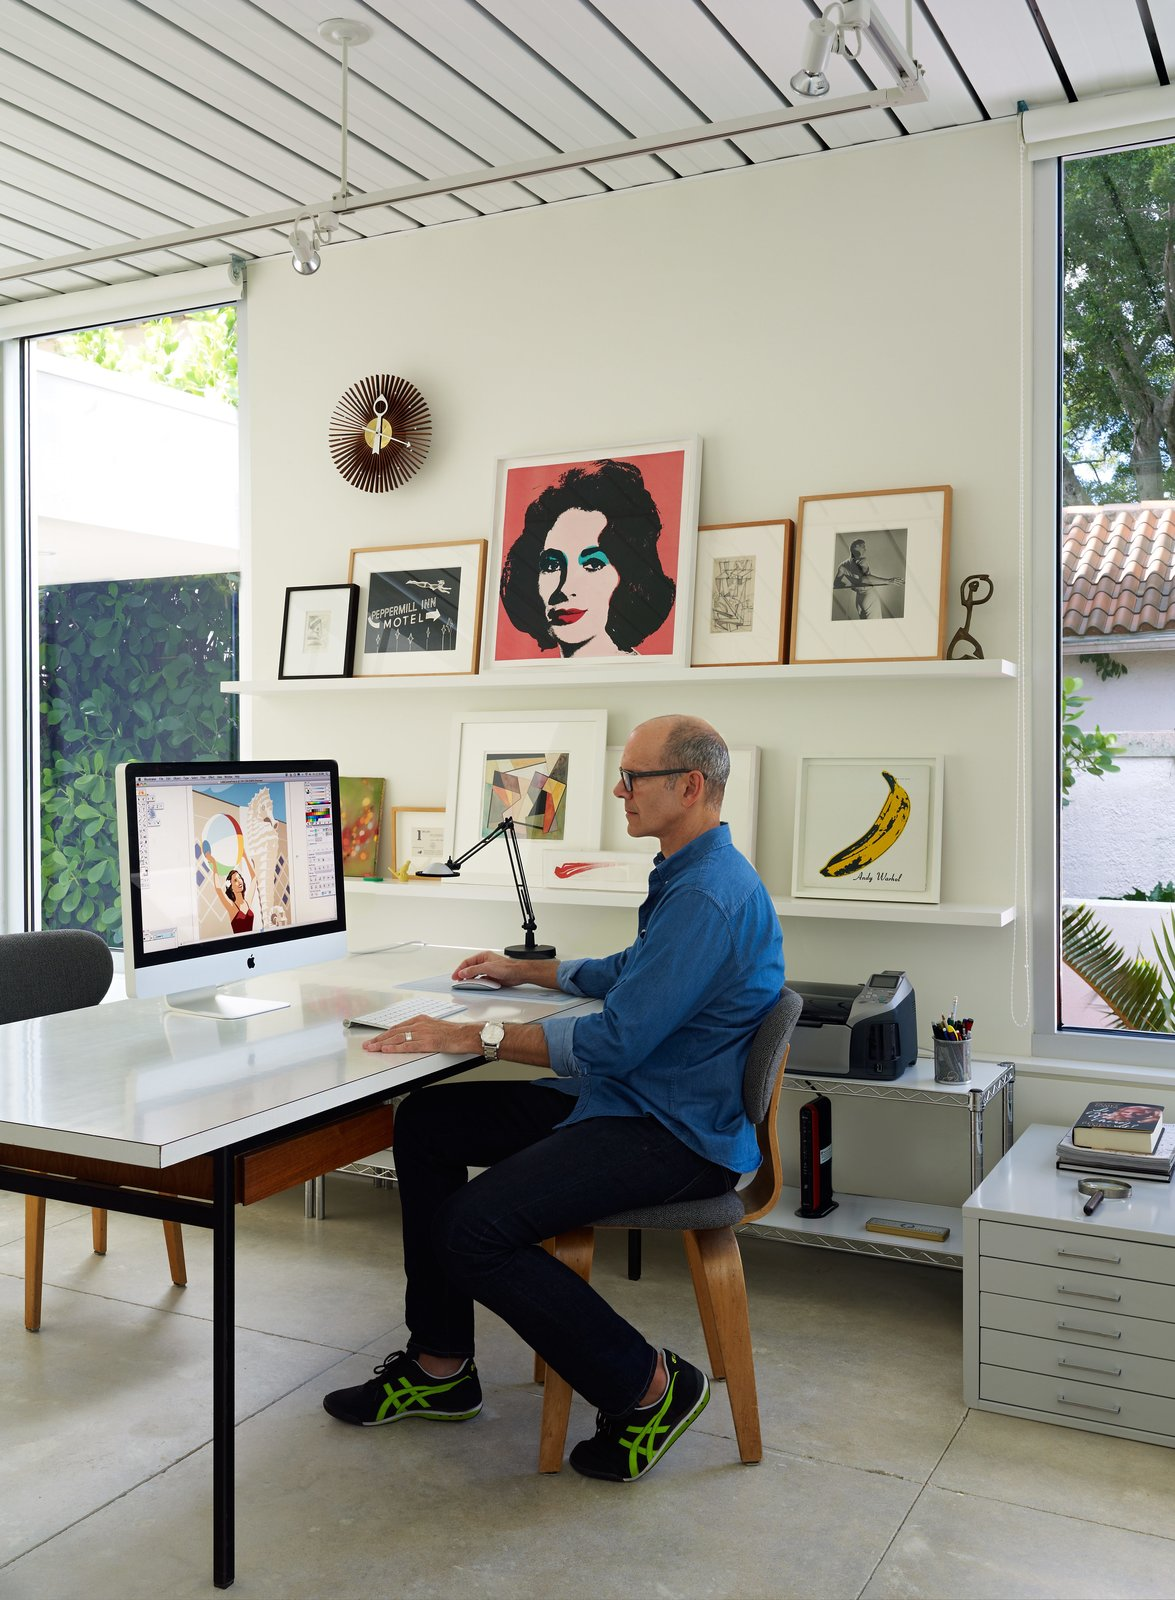 Office, Study Room Type, Chair, Lamps, Concrete Floor, Shelves, and Desk Pirman, an illustrator, works on a vintage Florence Knoll table in his studio at the front of the house.  Photo 6 of 13 in This Sparkling New Home Is a Perfect Remake of Classic Sarasota School Modernism